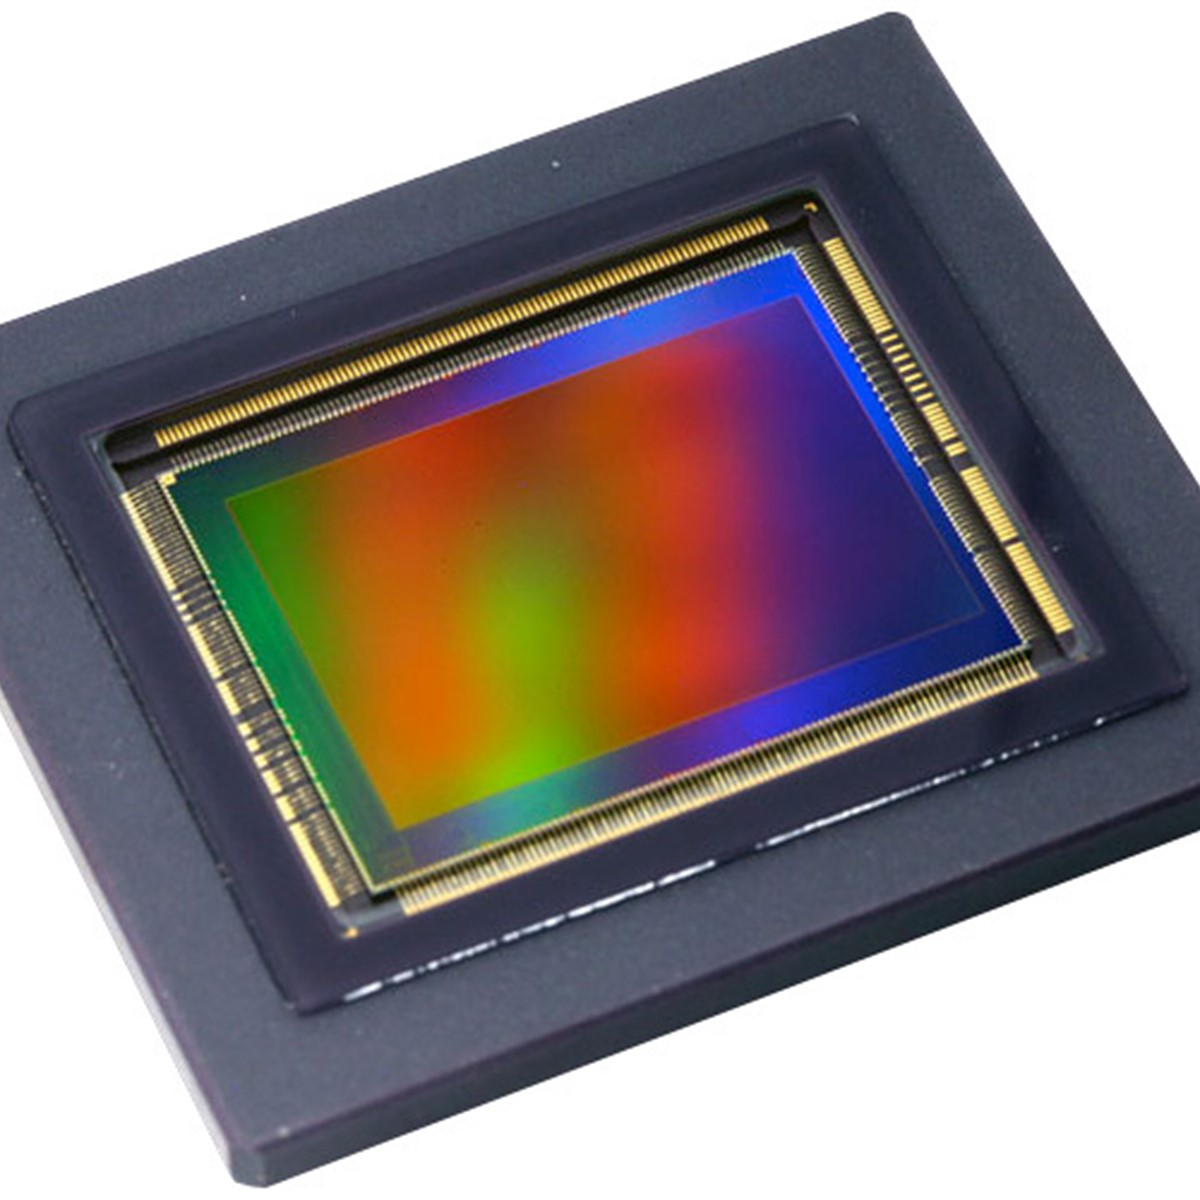 Canon is now selling CMOS image sensors, including a 120MP